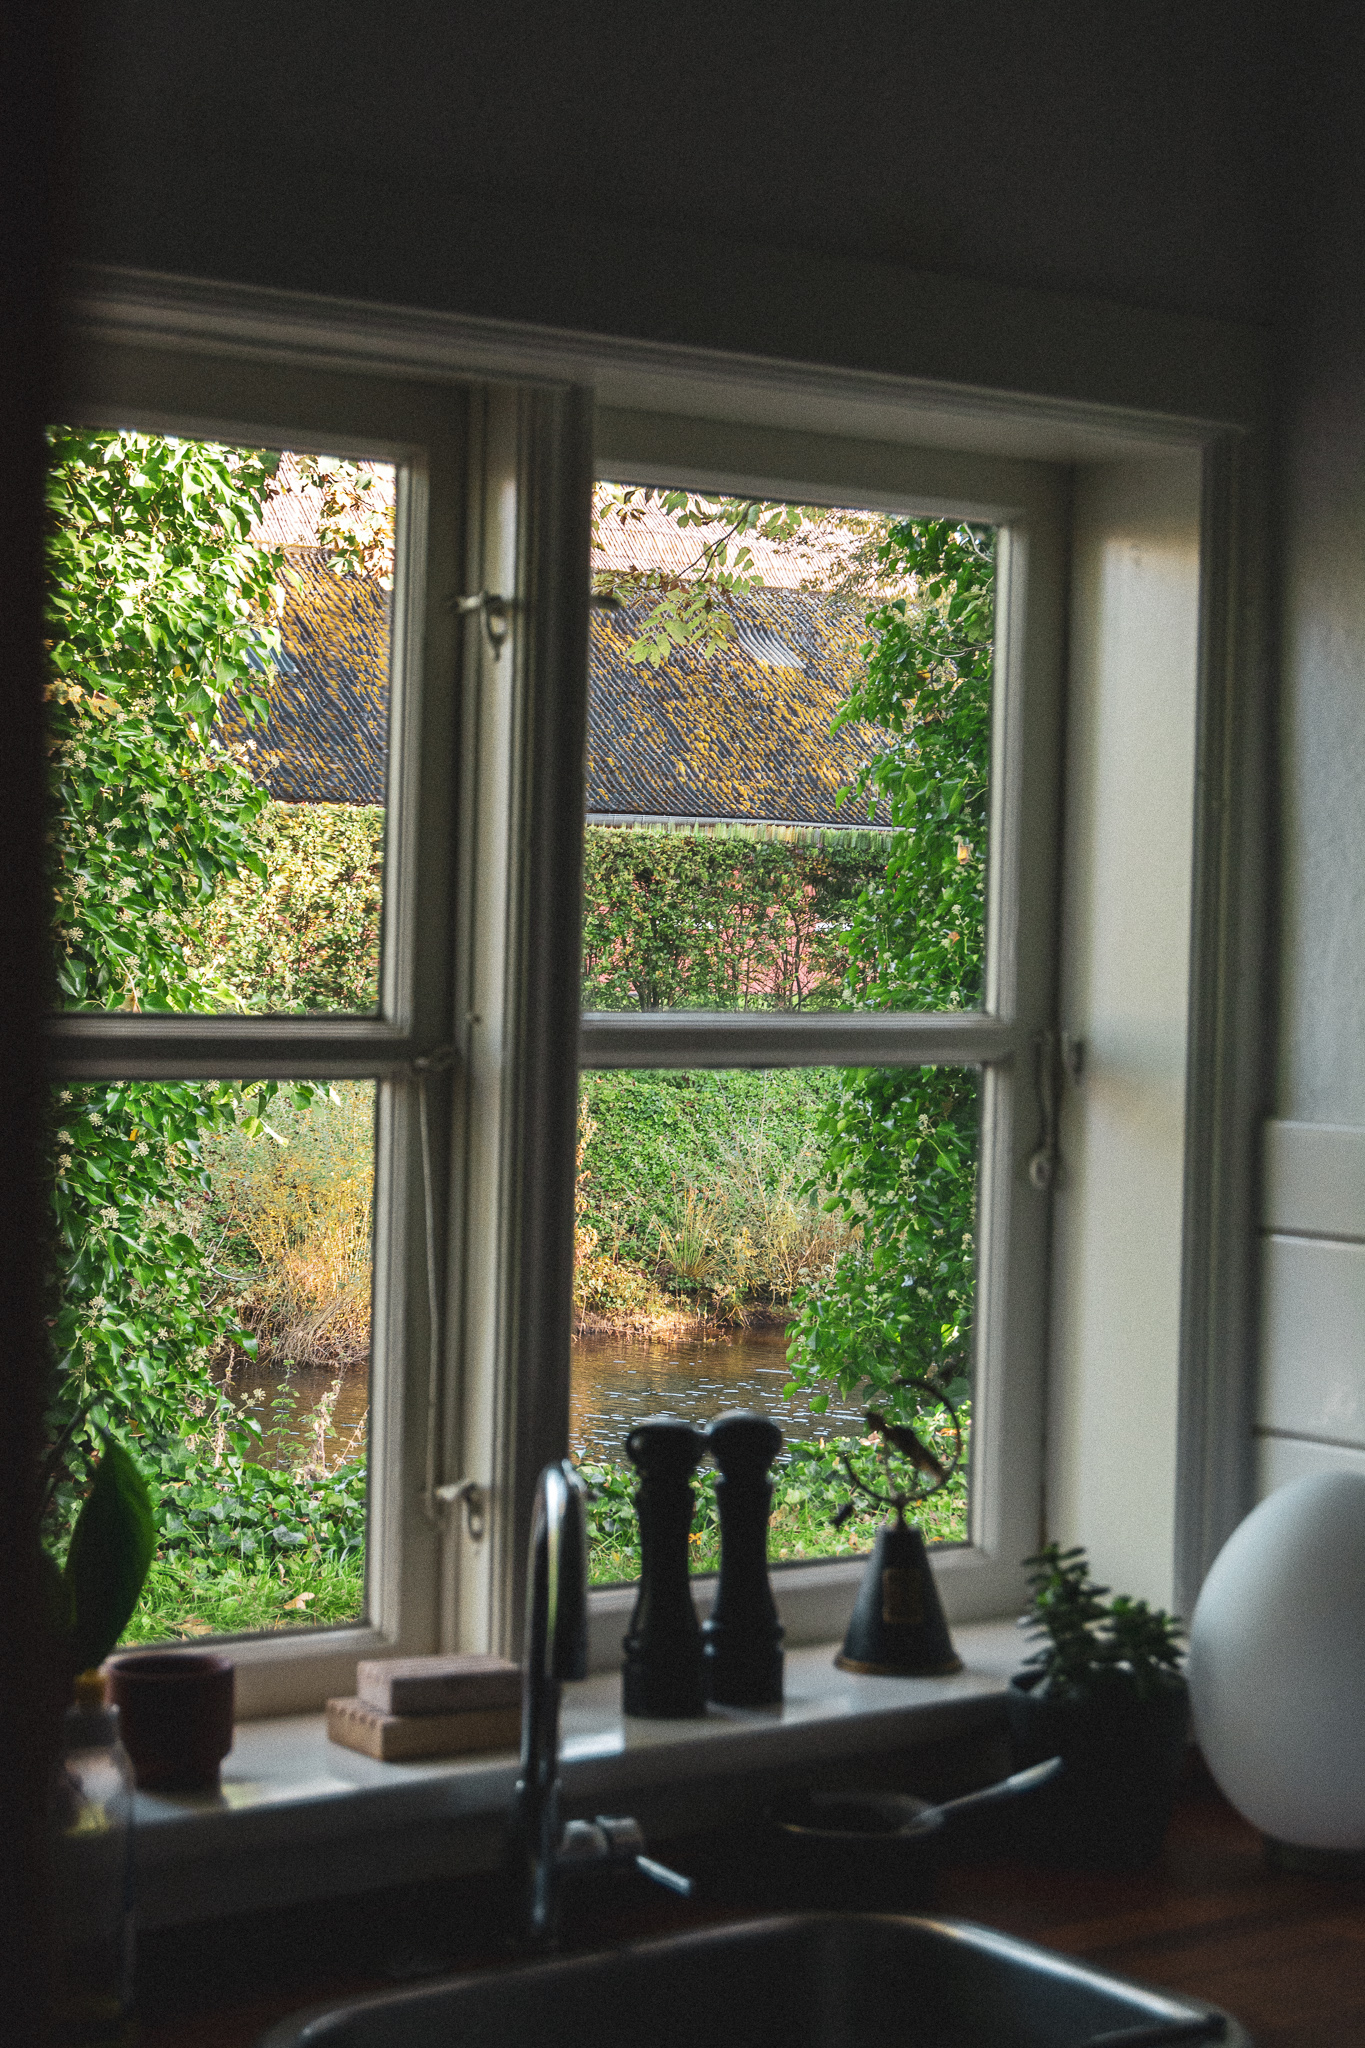 vindue, window, udsigt, view, kitchen window, køkkenvindue